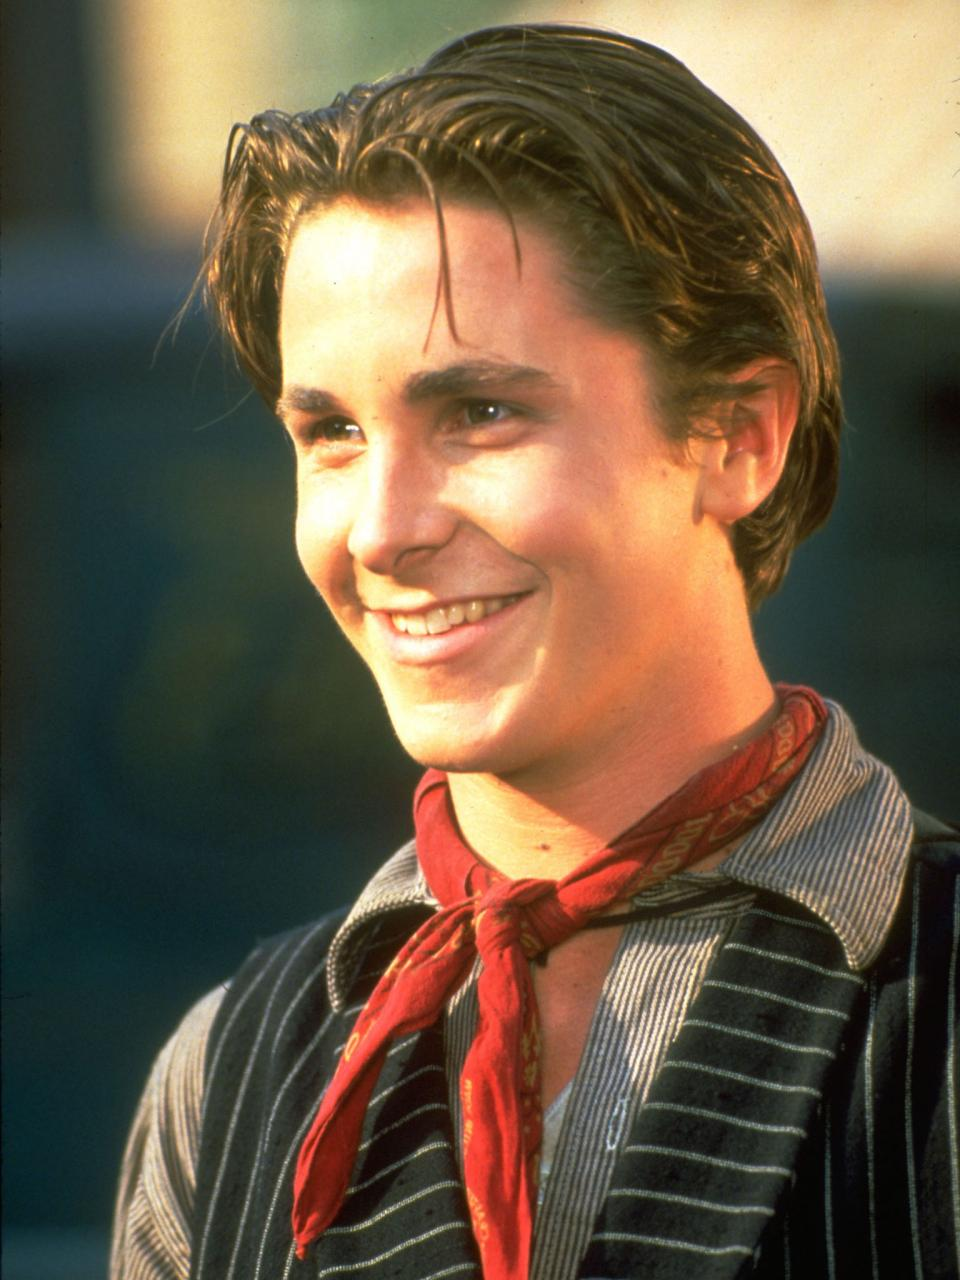 Newsies christian bale 15 Unexpected Celeb Photos From History